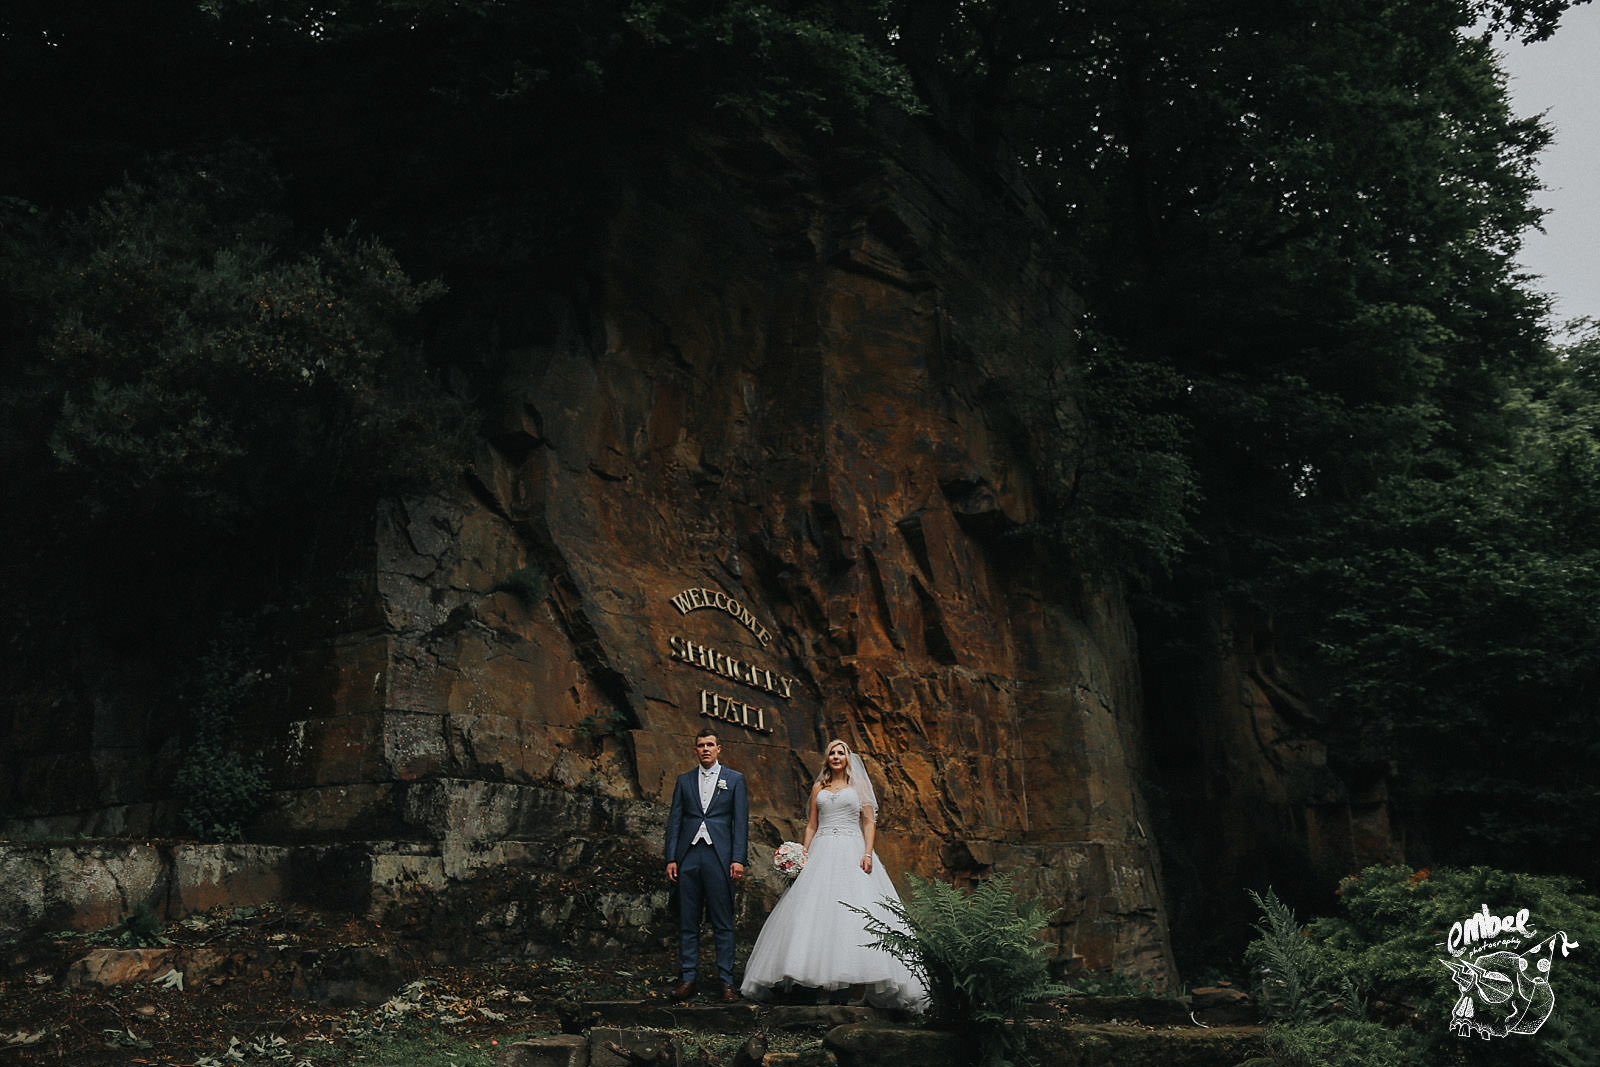 rock face at shrigley hall with bride under it